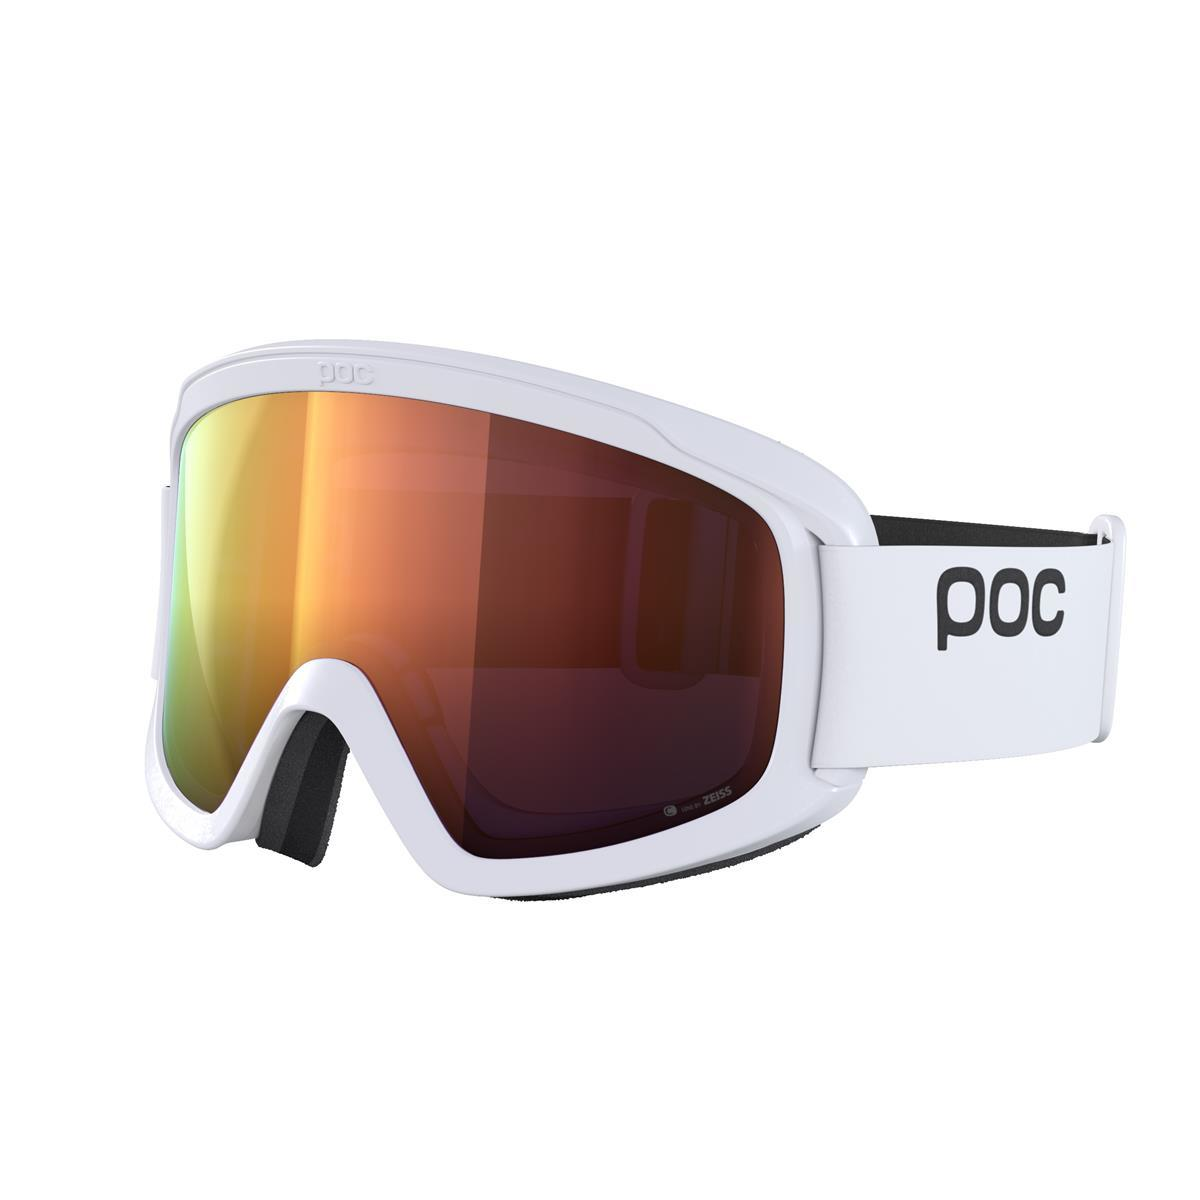 POC Opsin Clarity